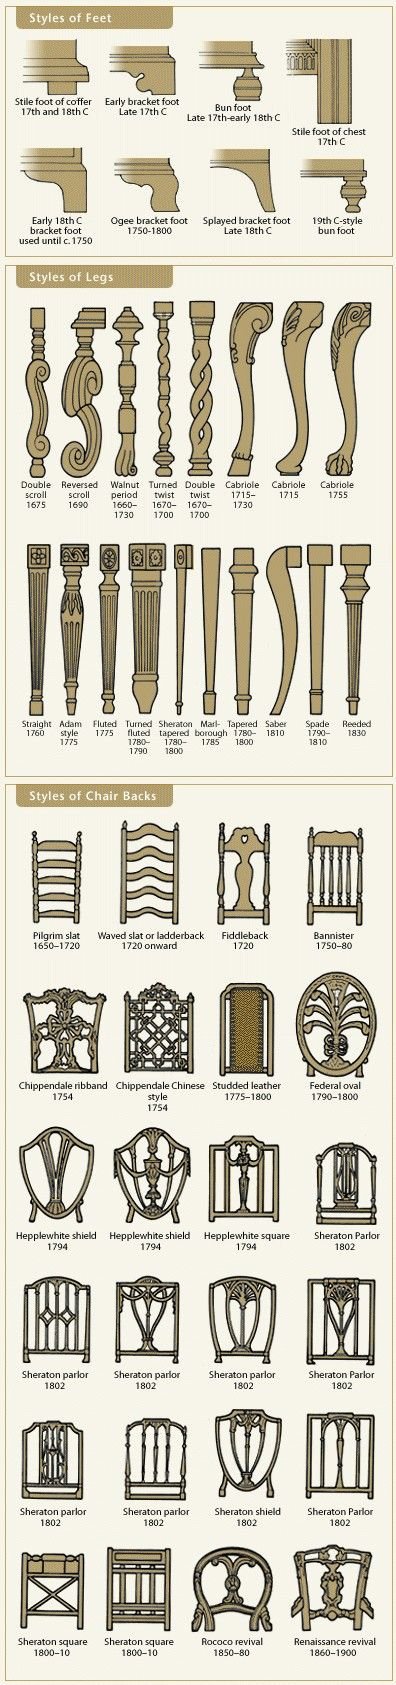 Styles Of Furniture Chicagoappraisers Antique